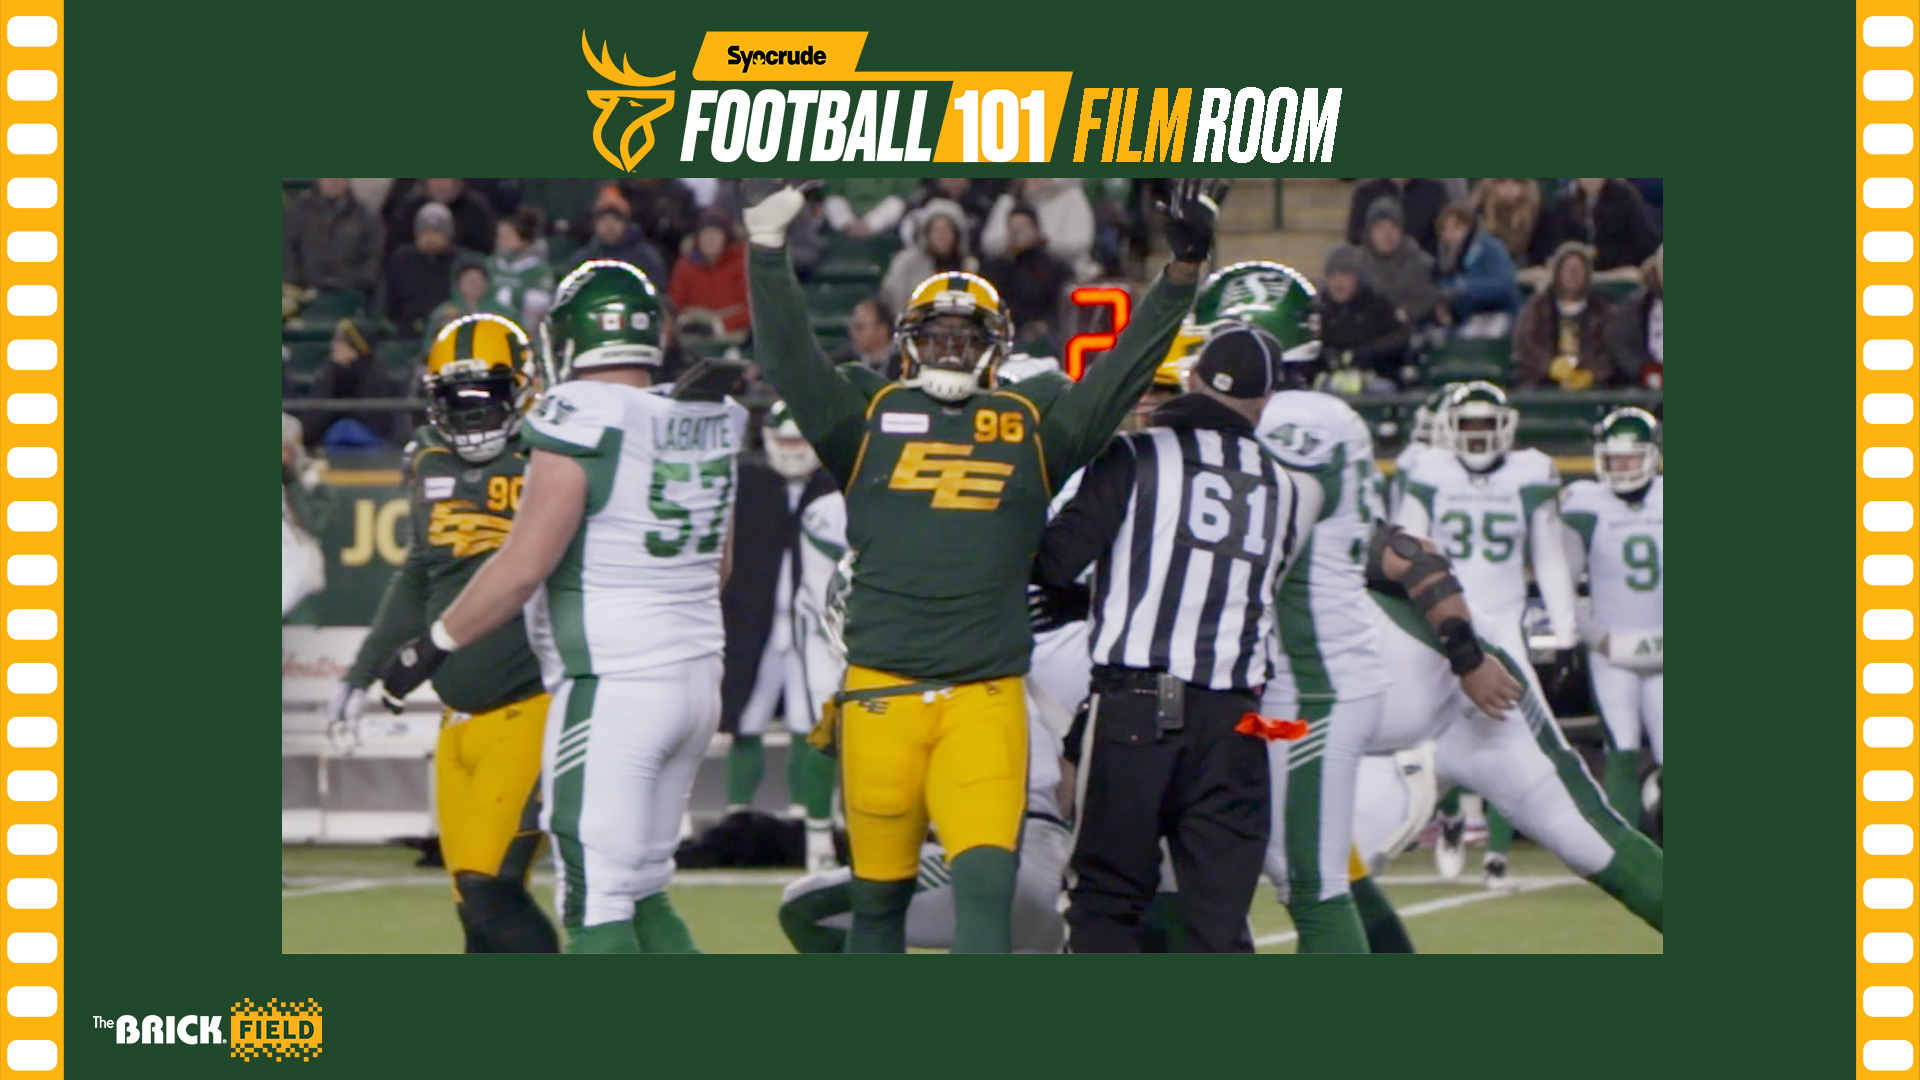 Syncrude Football 101 Film Room: DT Mike Moore